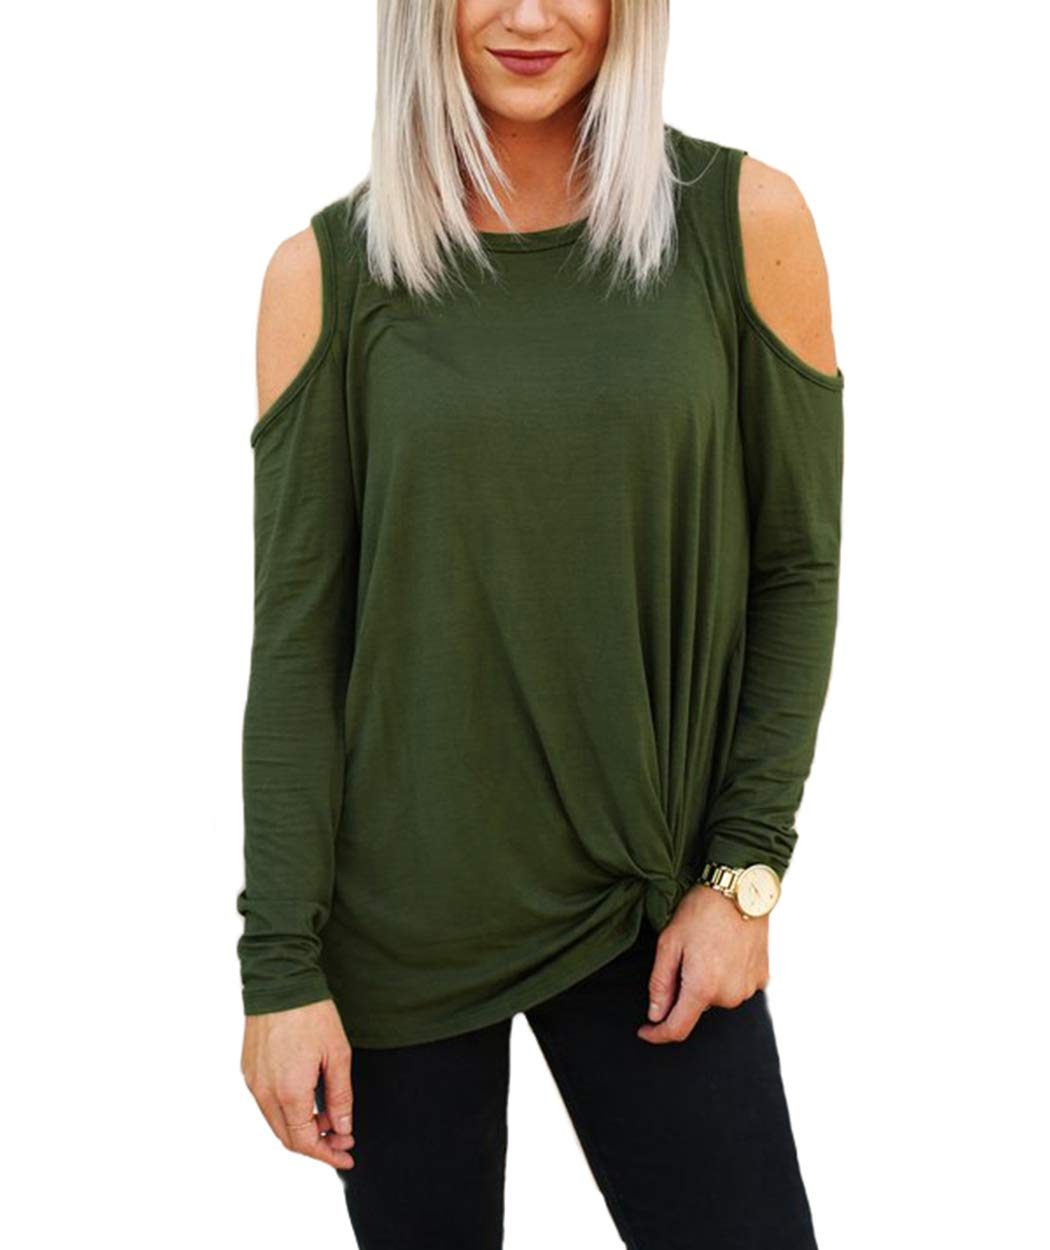 Eanklosco Women\'s Long Sleeve Cold Shoulder Cut Out T Shirts Casual Knot Tunic Tops (Army Green, 2XL)